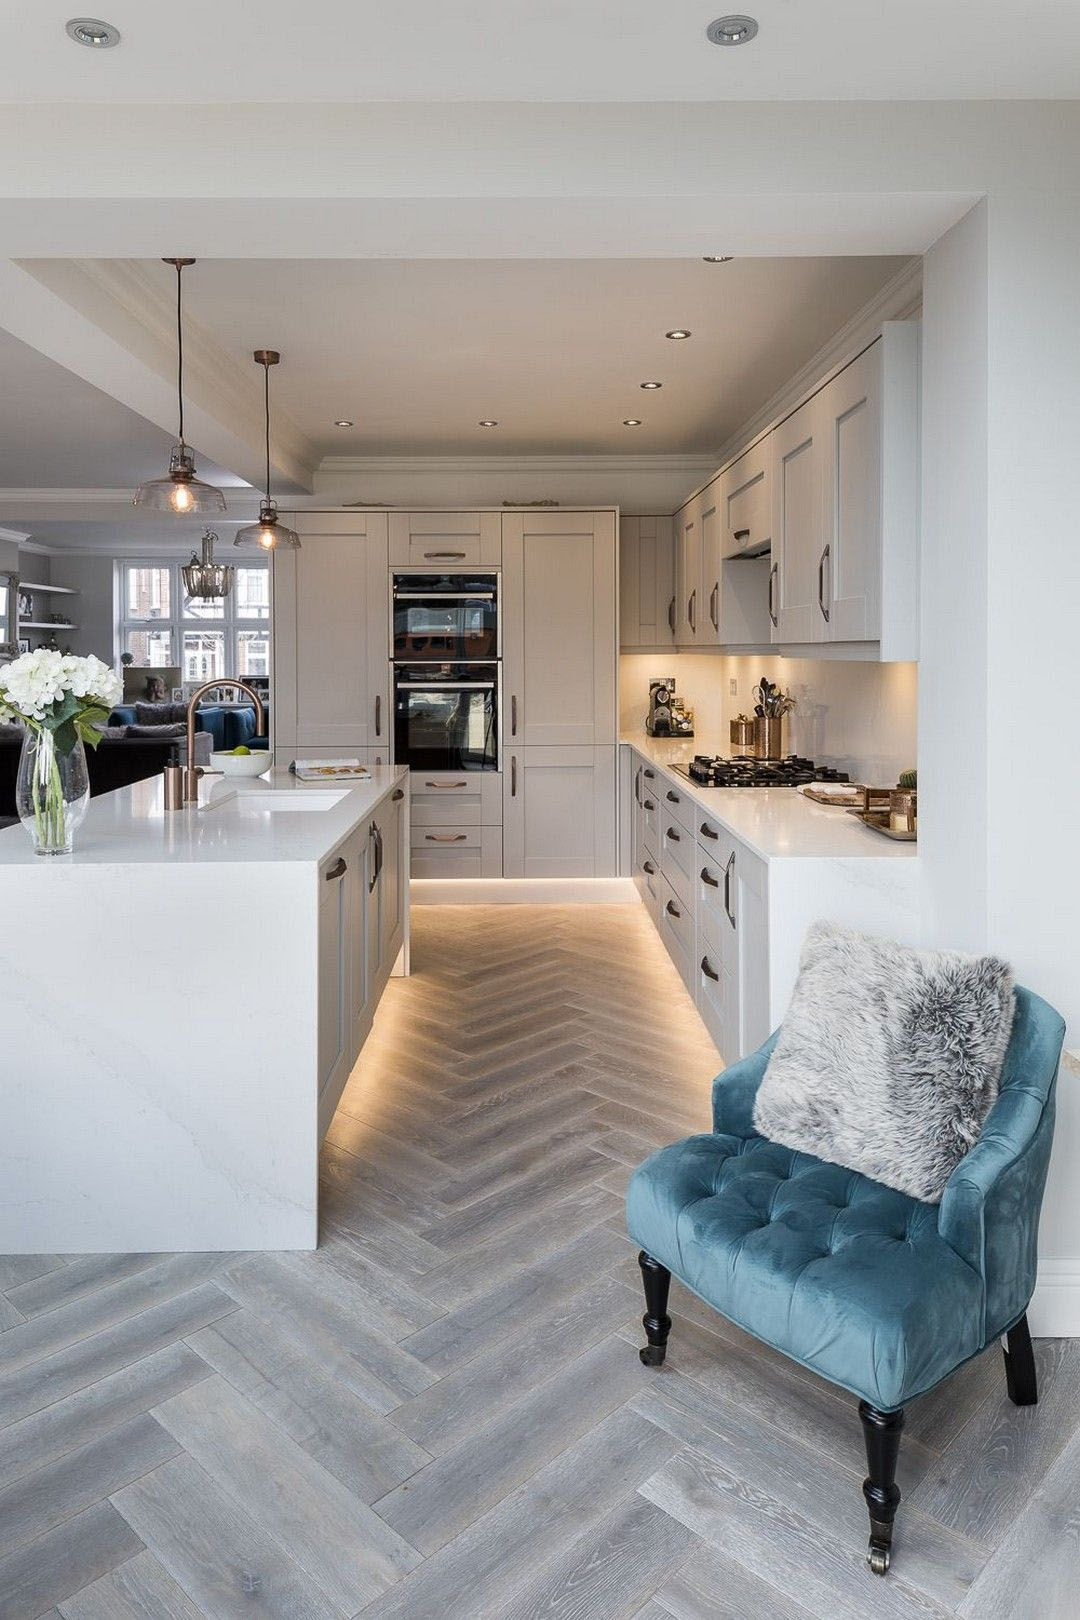 unique kitchen flooring ideas tile for your cozy home in 2020 open plan kitchen living room on kitchen flooring ideas id=36188